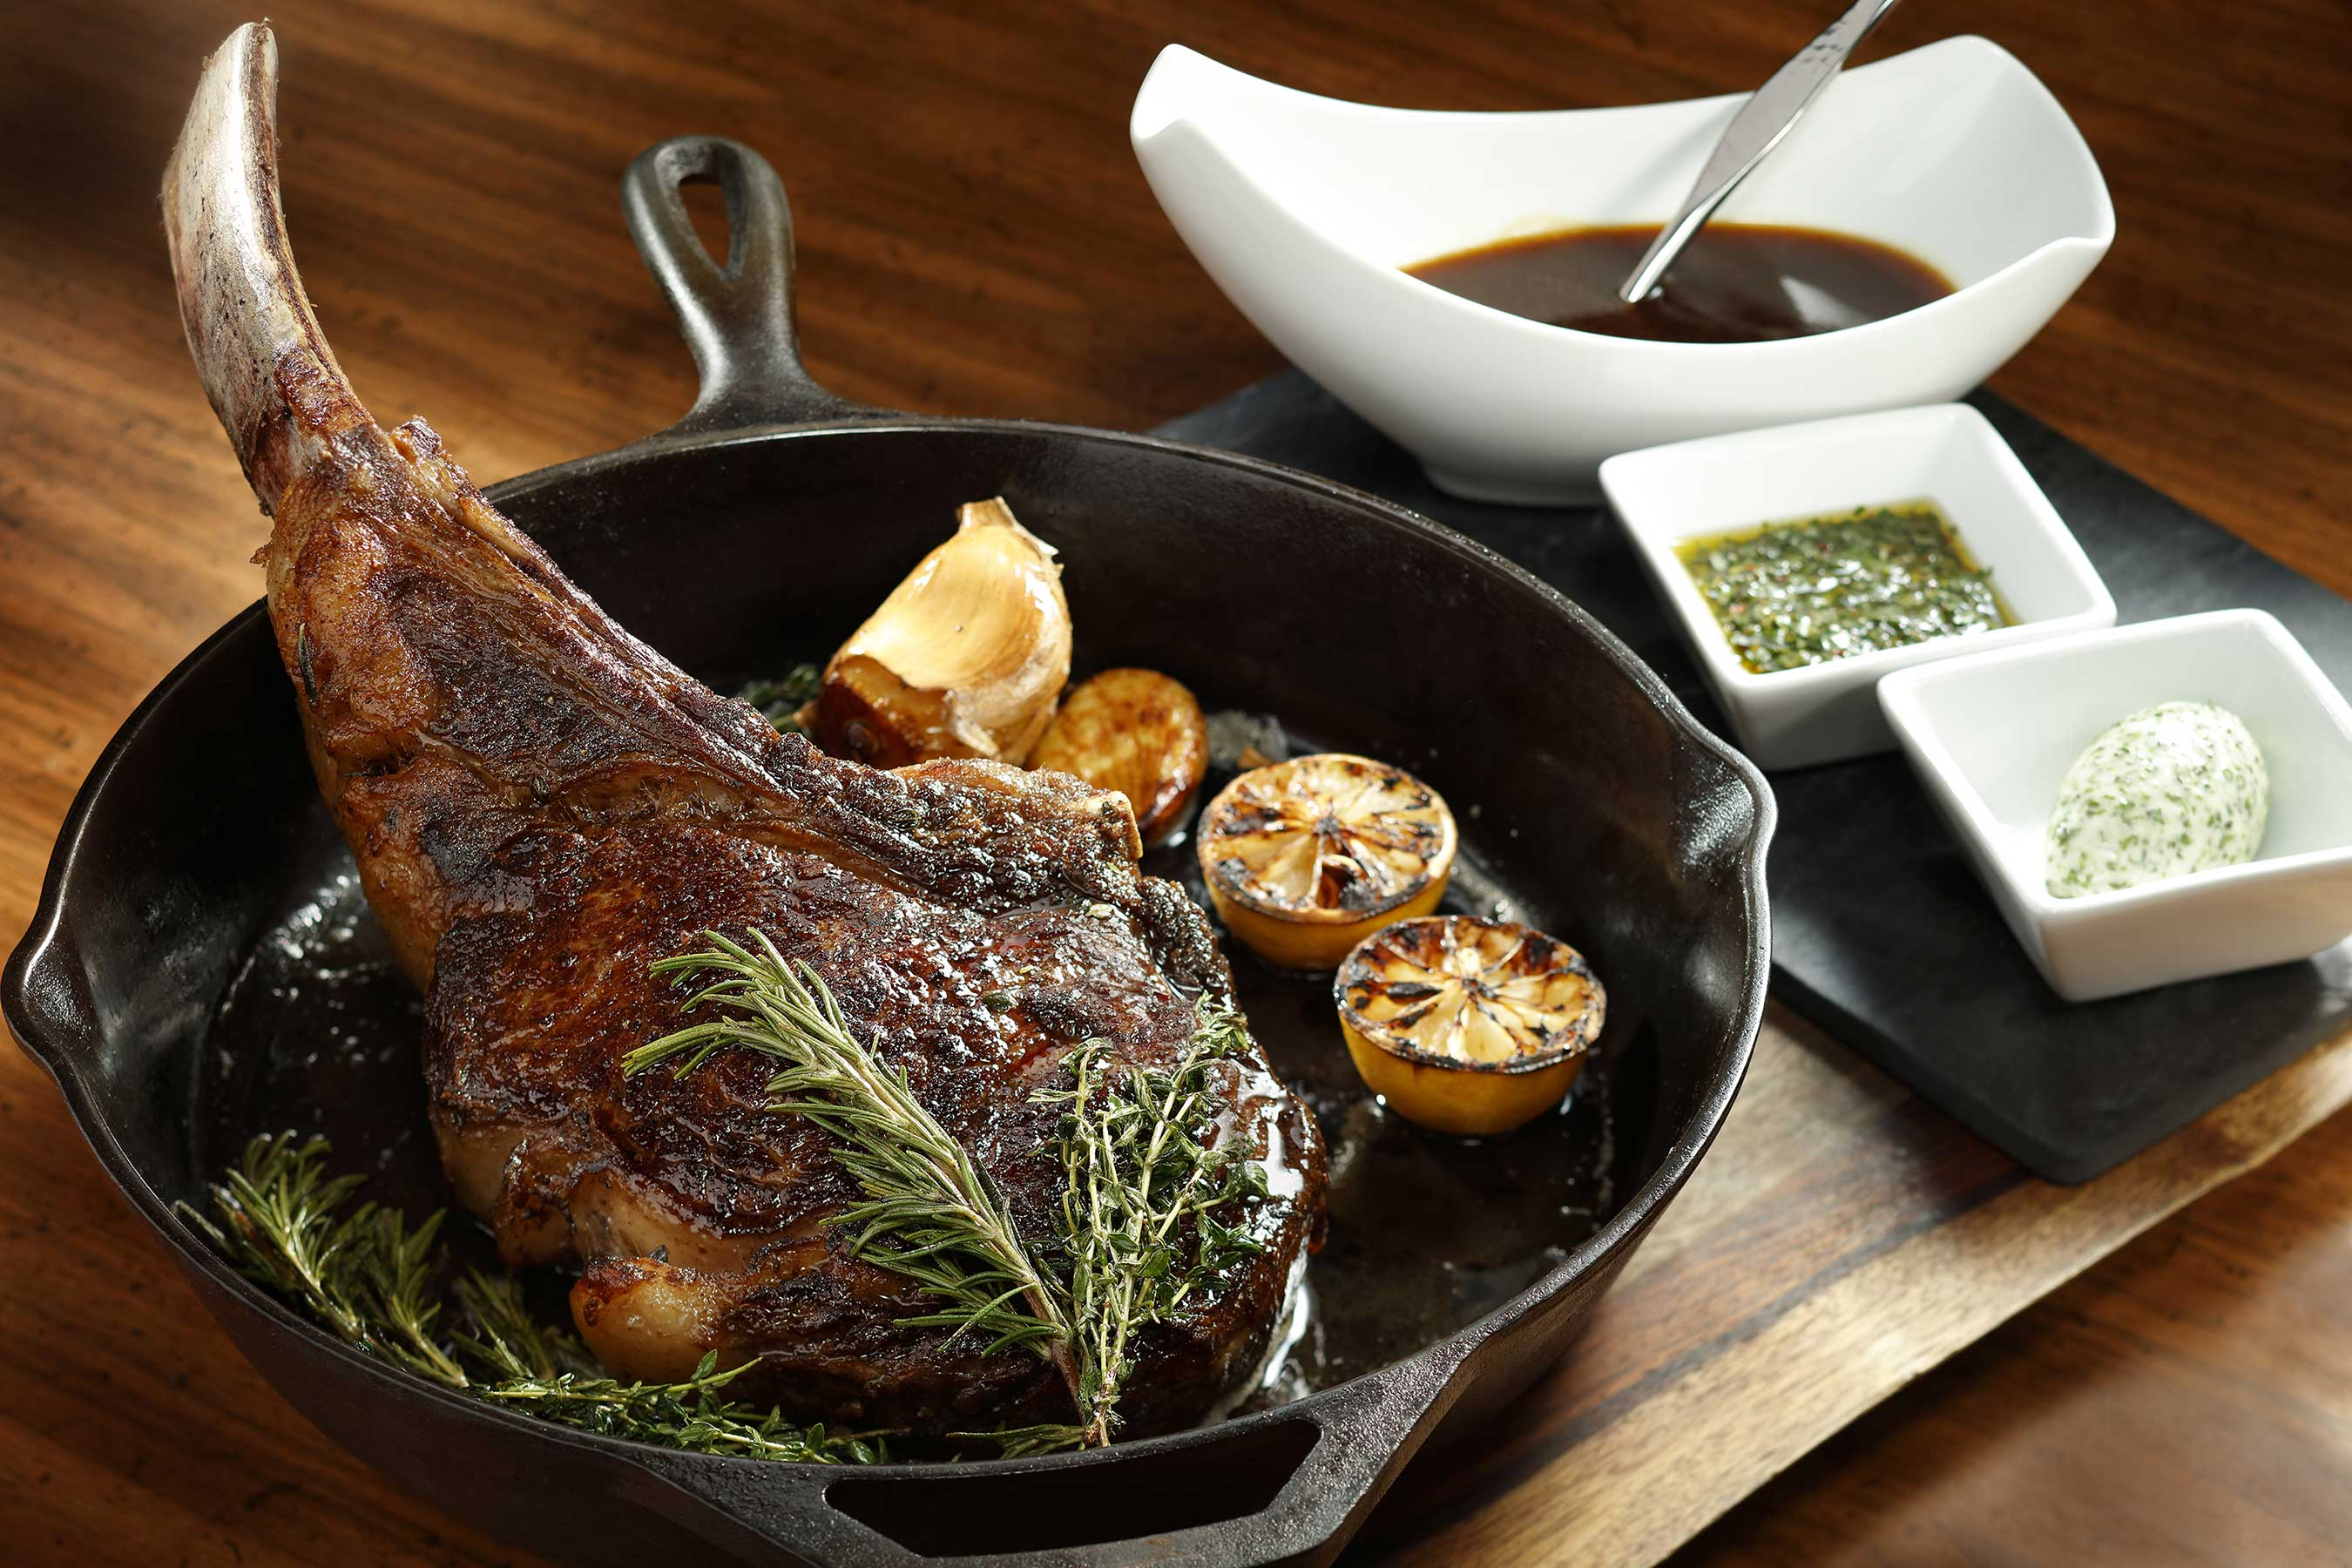 A 54-ounce Mishima Prime Tomahawk Ribeye steak is cooked to perfection and served alongside Chef Morimoto's signature sweet onion and garlic jus.